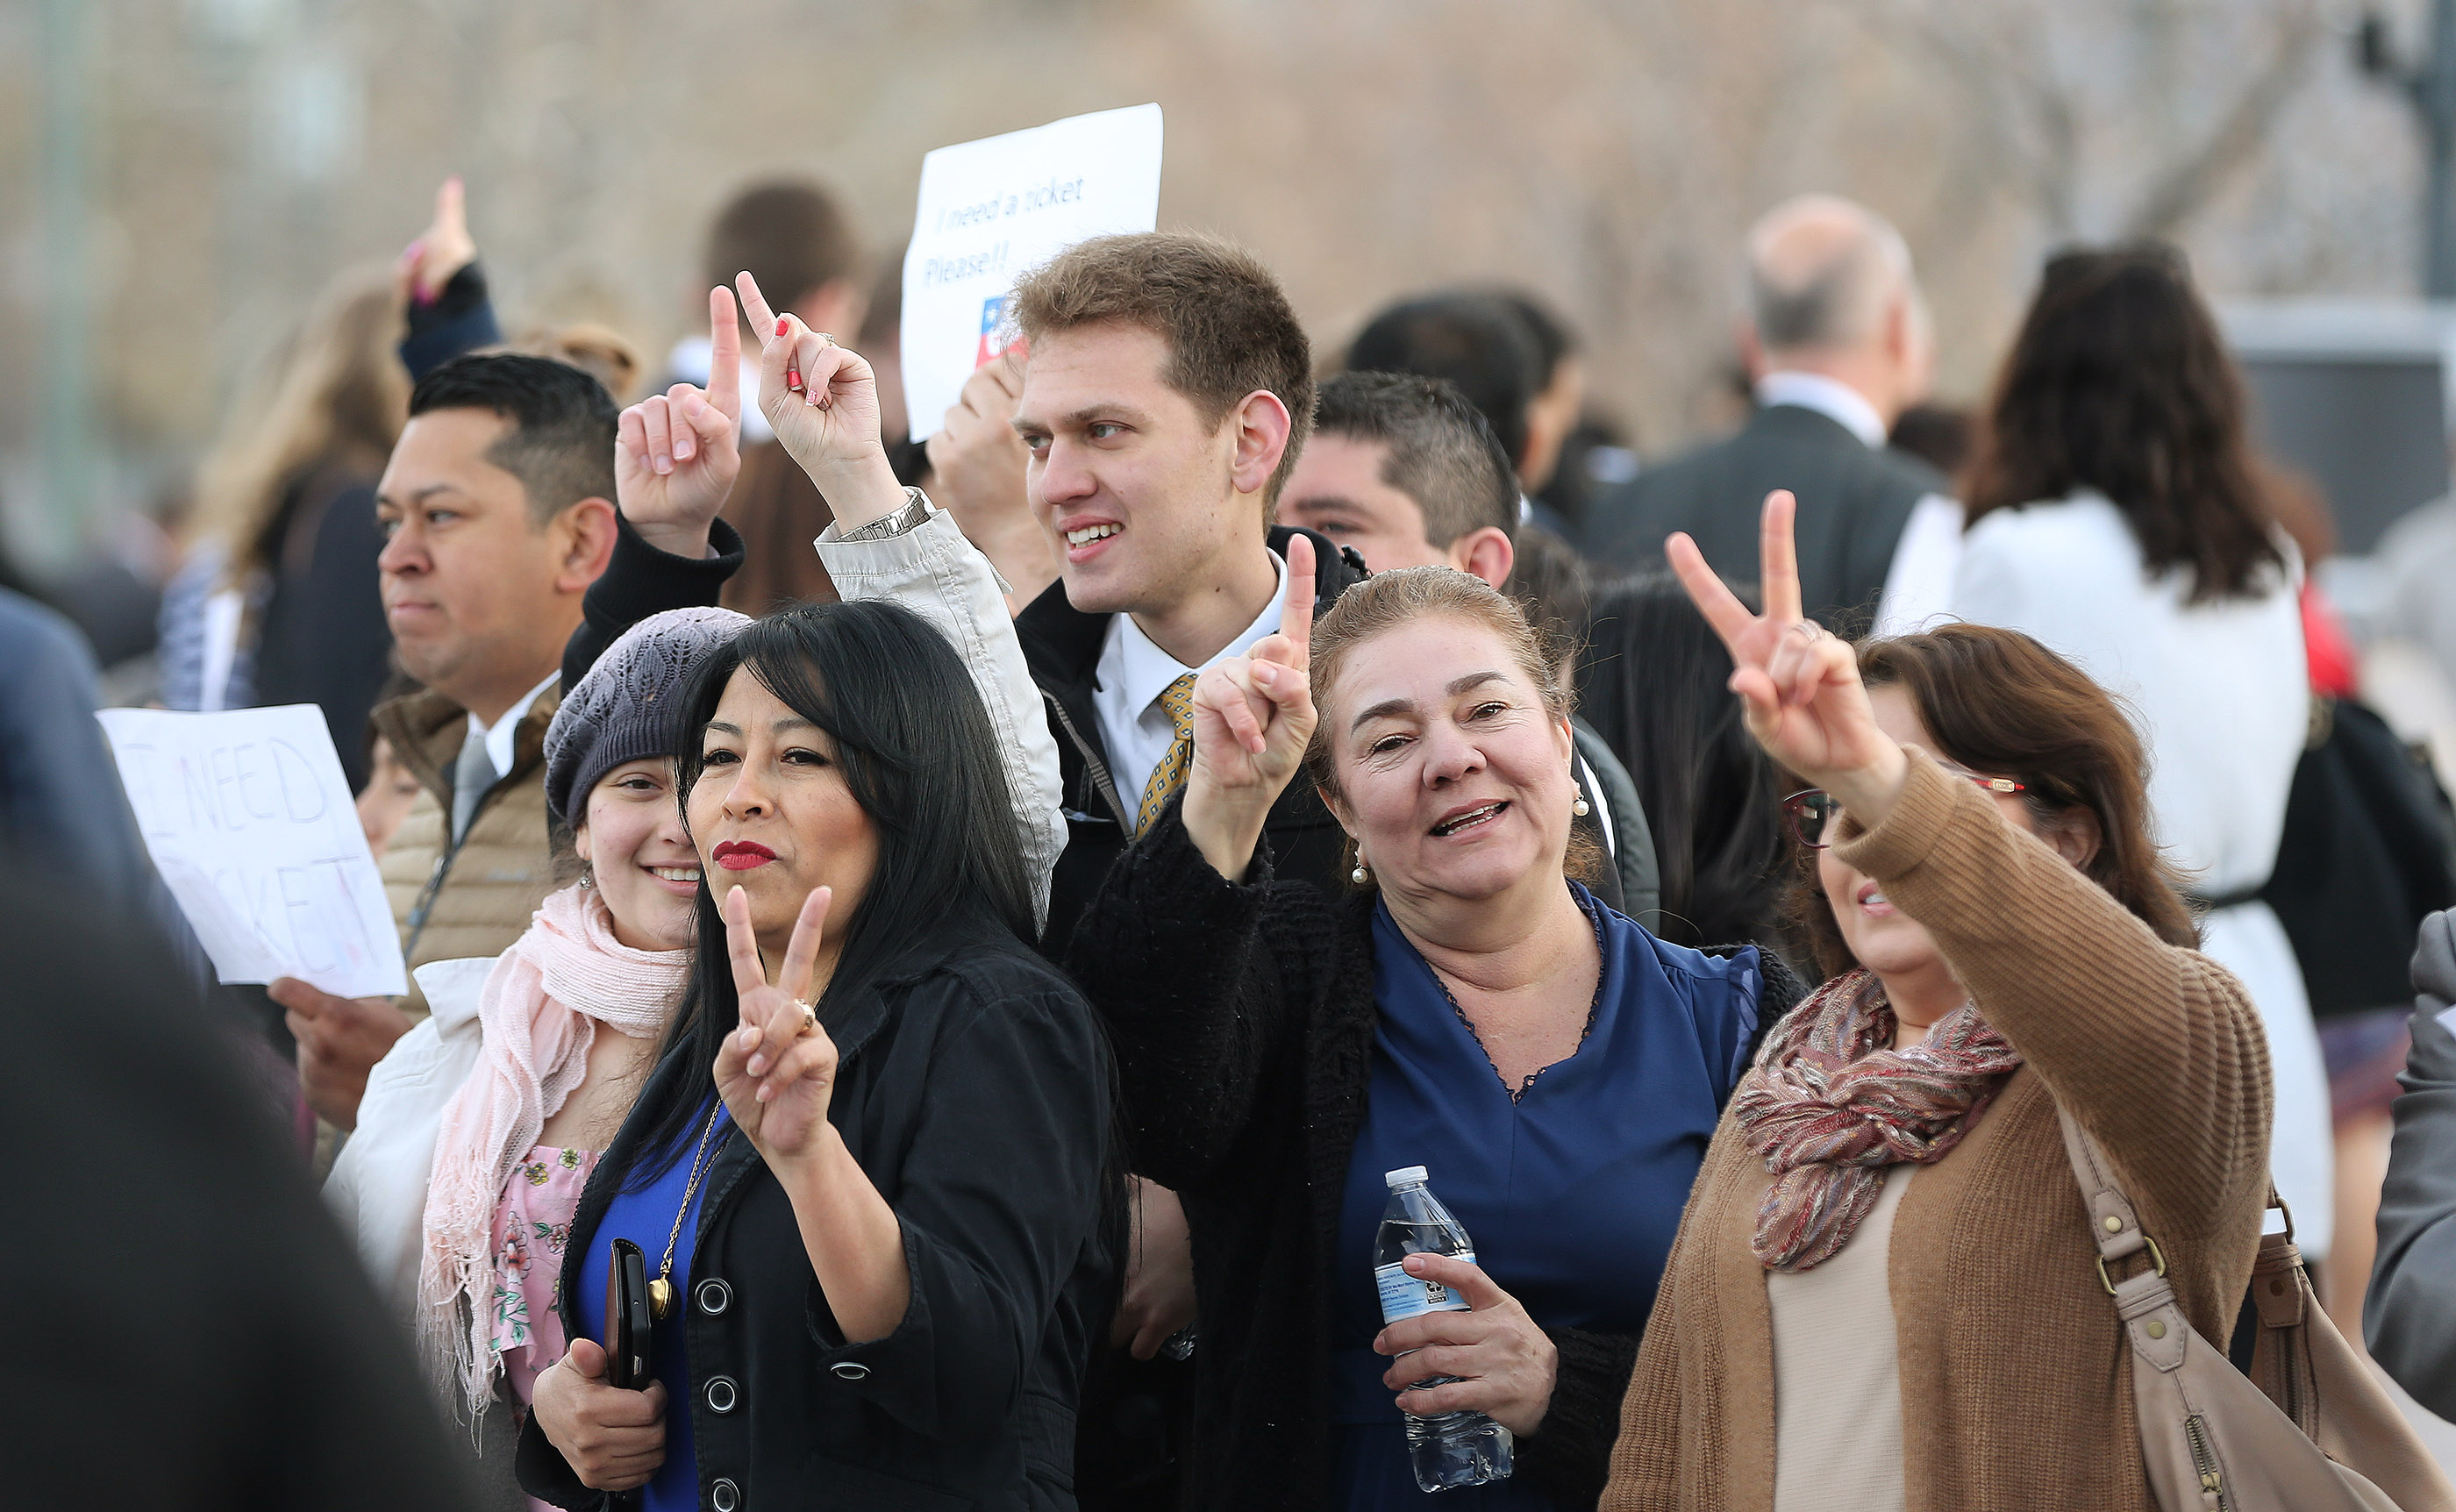 Conferencegoers ask for extra tickets outside the Conference Center for the 189th Annual General Conference of The Church of Jesus Christ of Latter-day Saints in Salt Lake City on Sunday, April 7, 2019.